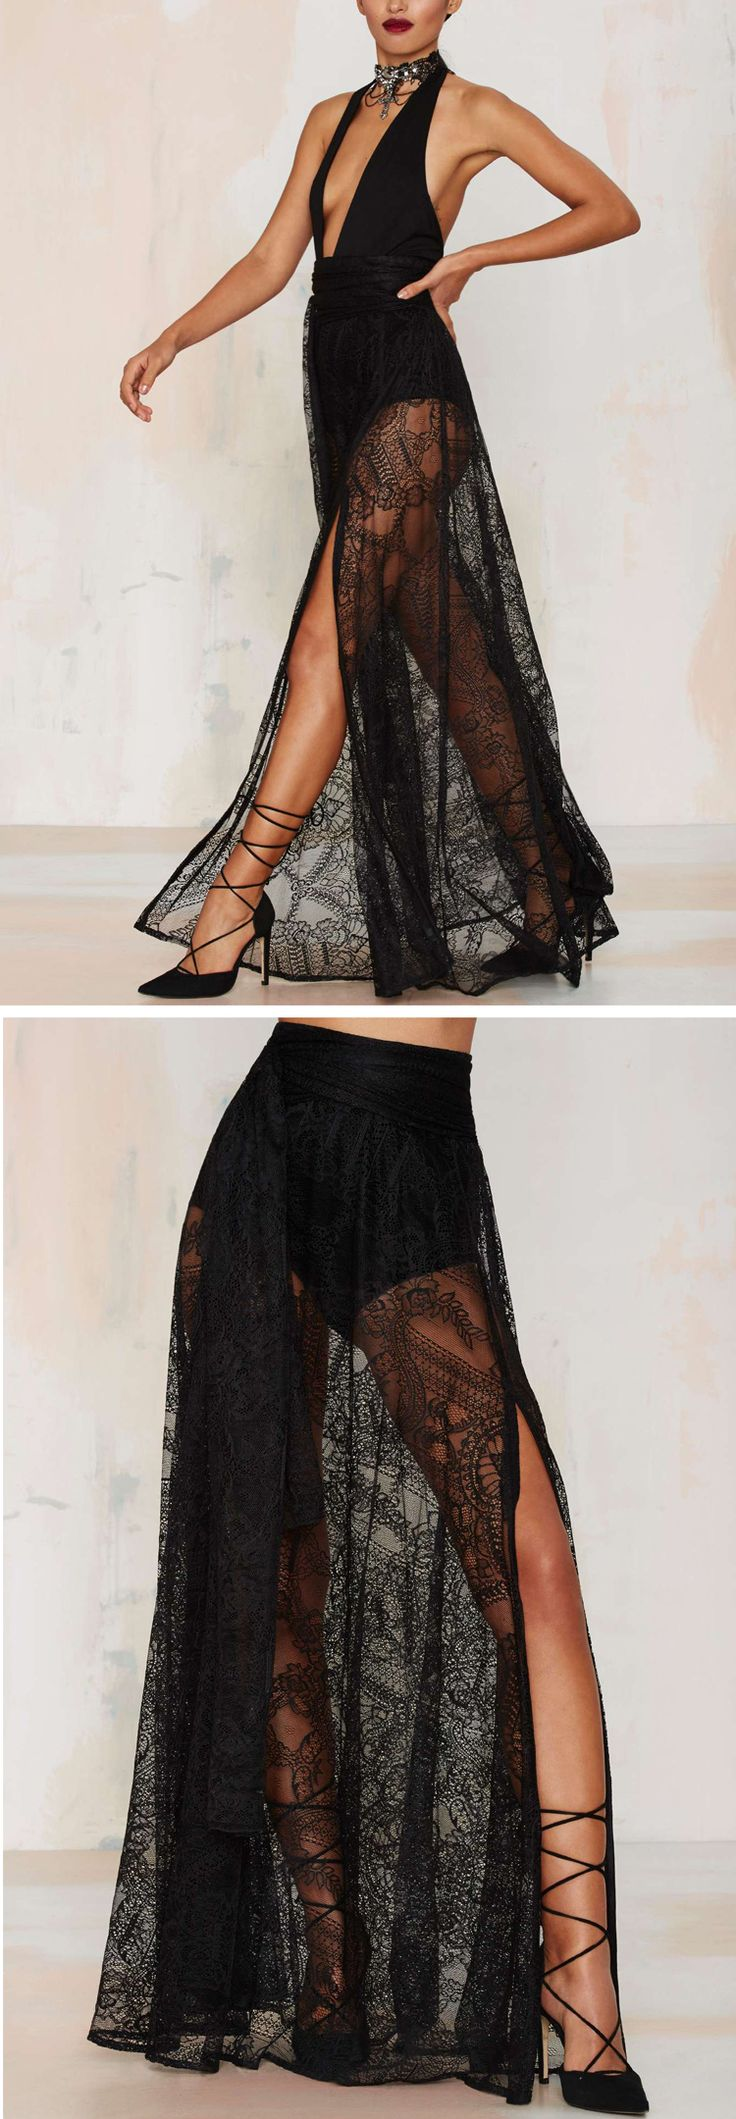 Daring sheer lace maxi skirt